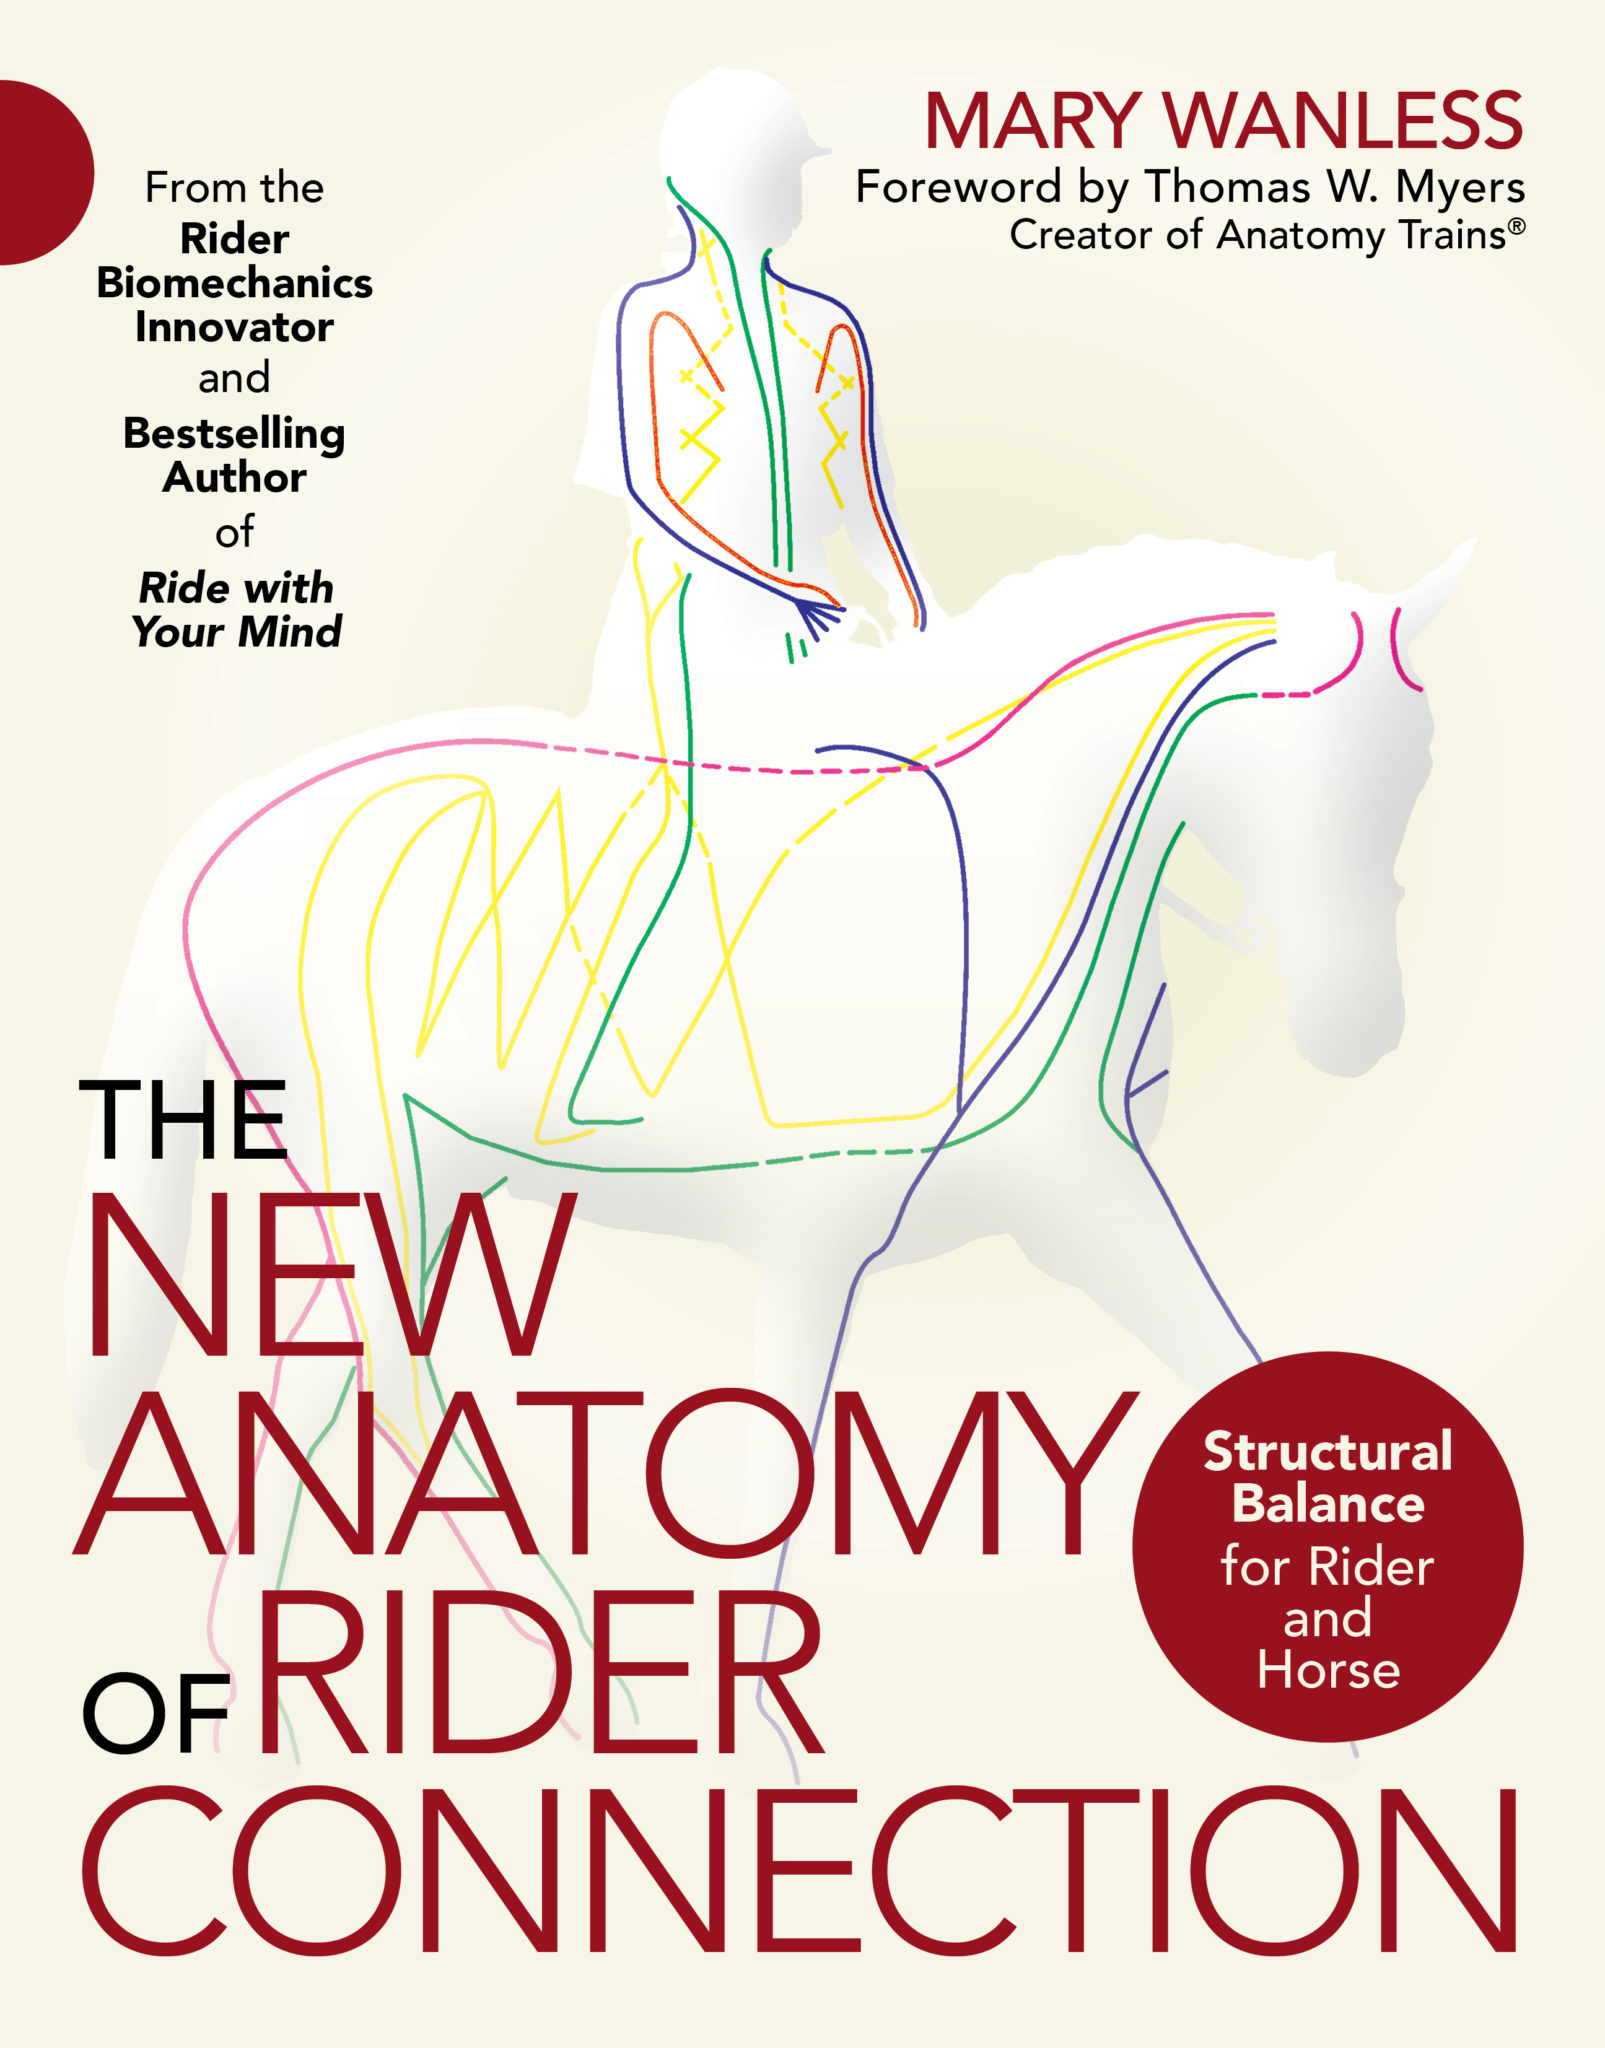 The New Anatomy of Rider Connection Book by Mary Wanless